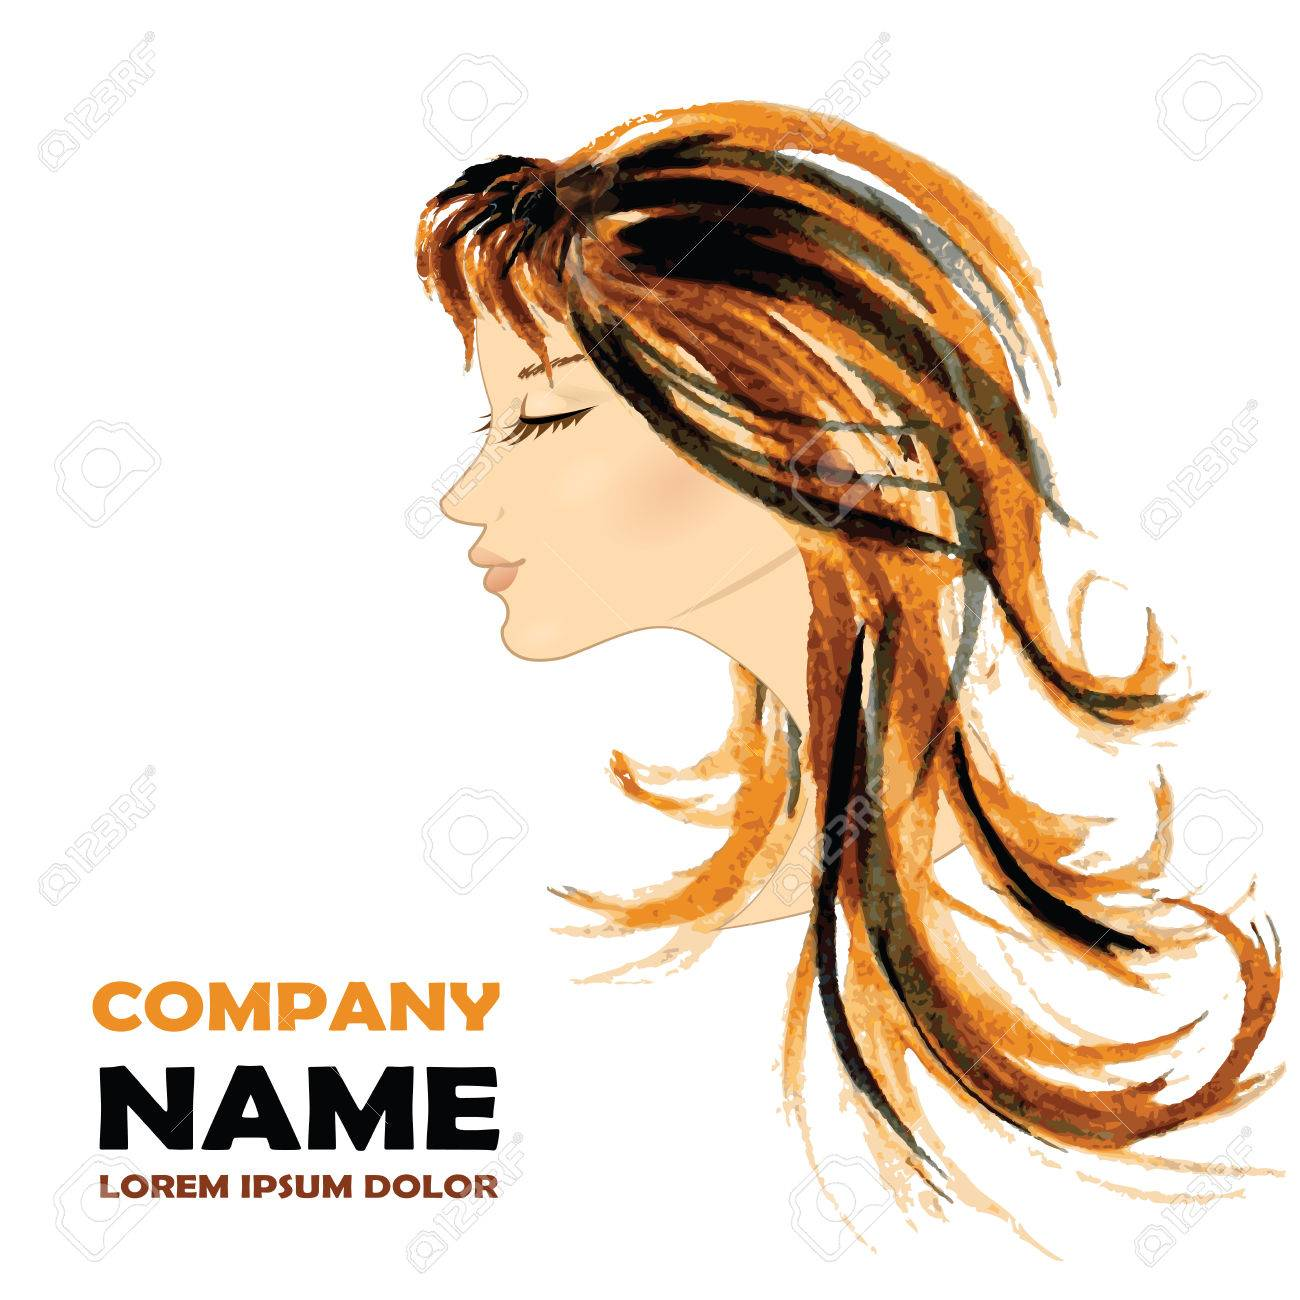 Fashion Woman With Long Hair Vector Illustration Stylish Design Royalty Free Cliparts Vectors And Stock Illustration Image 38810039